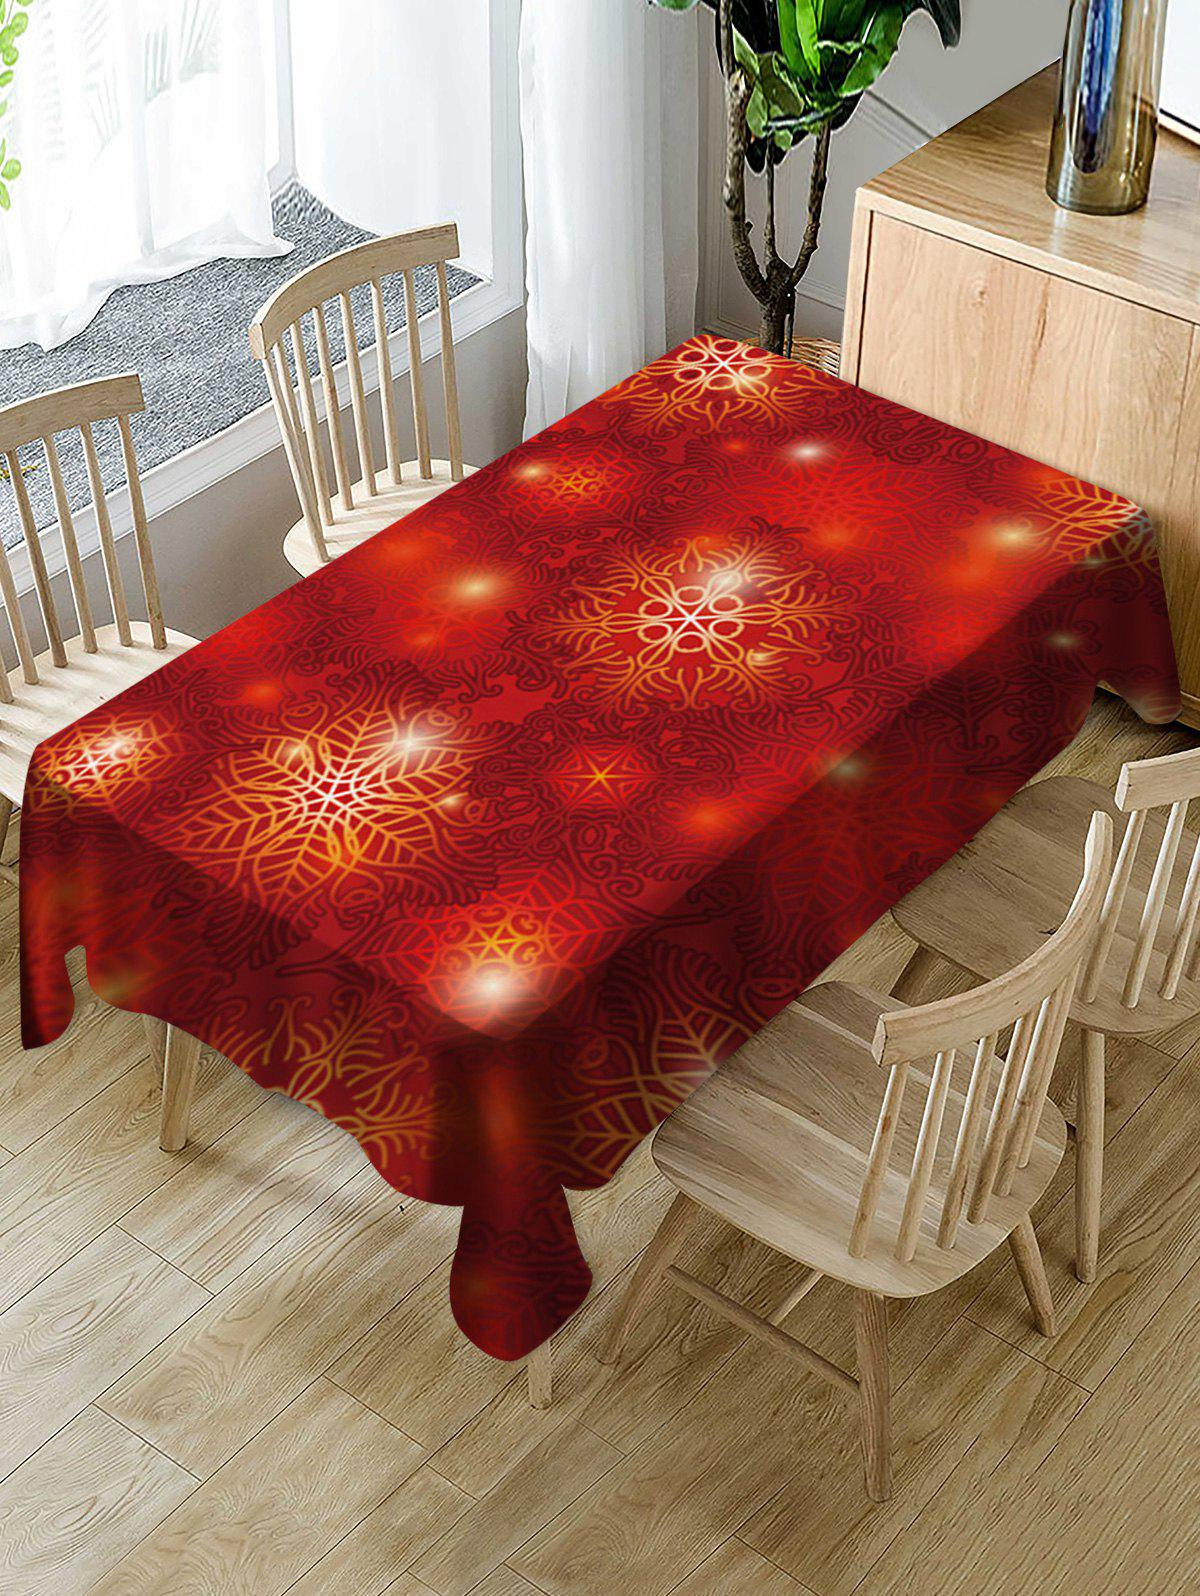 Chic Christmas Fabric Waterproof Table Cloth